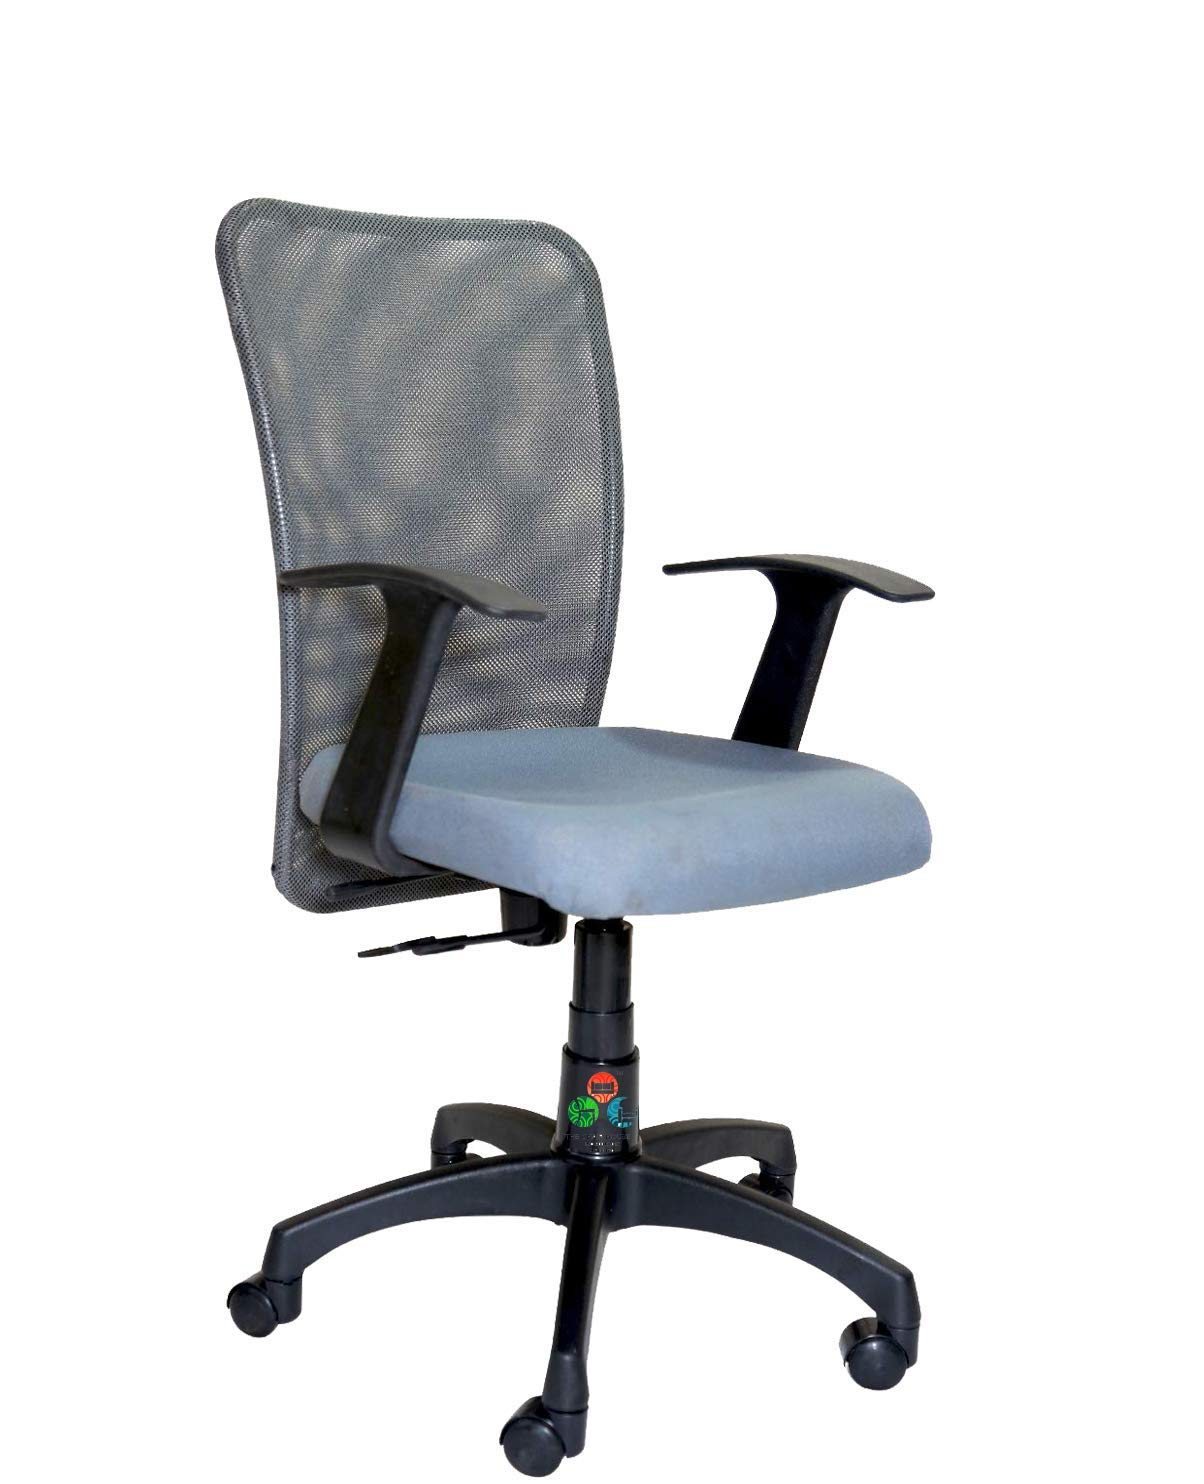 The Chair House C83 Mid Back Mesh Fabric Office Chair review